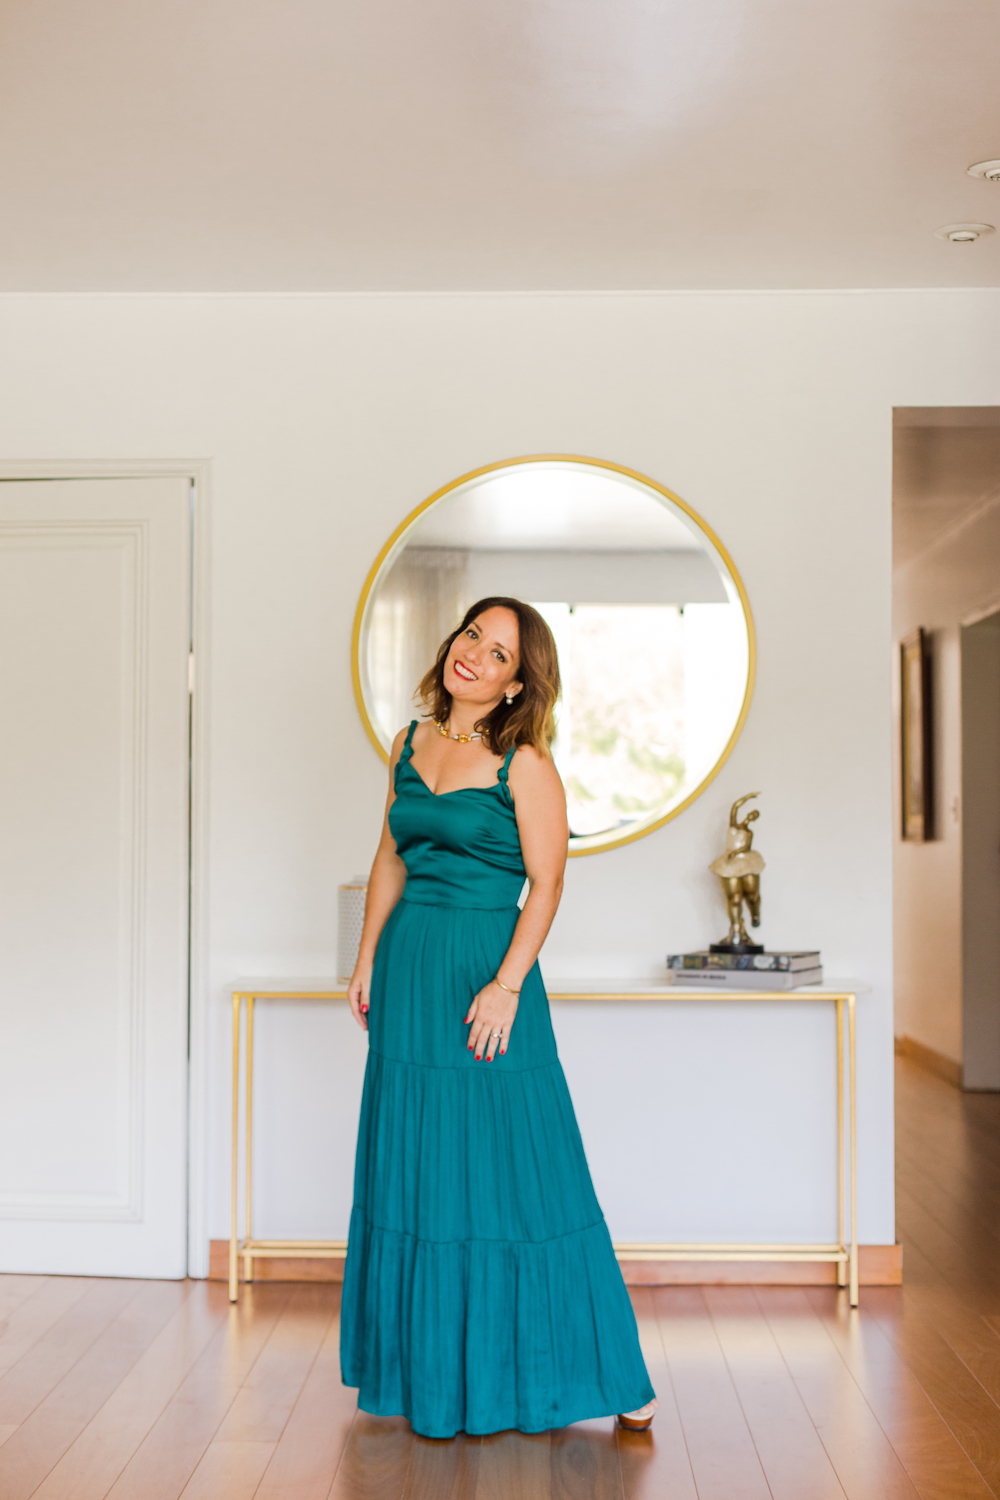 Banana Republic Emerald Green Maxi Dress - La Vida de Serendipity 1